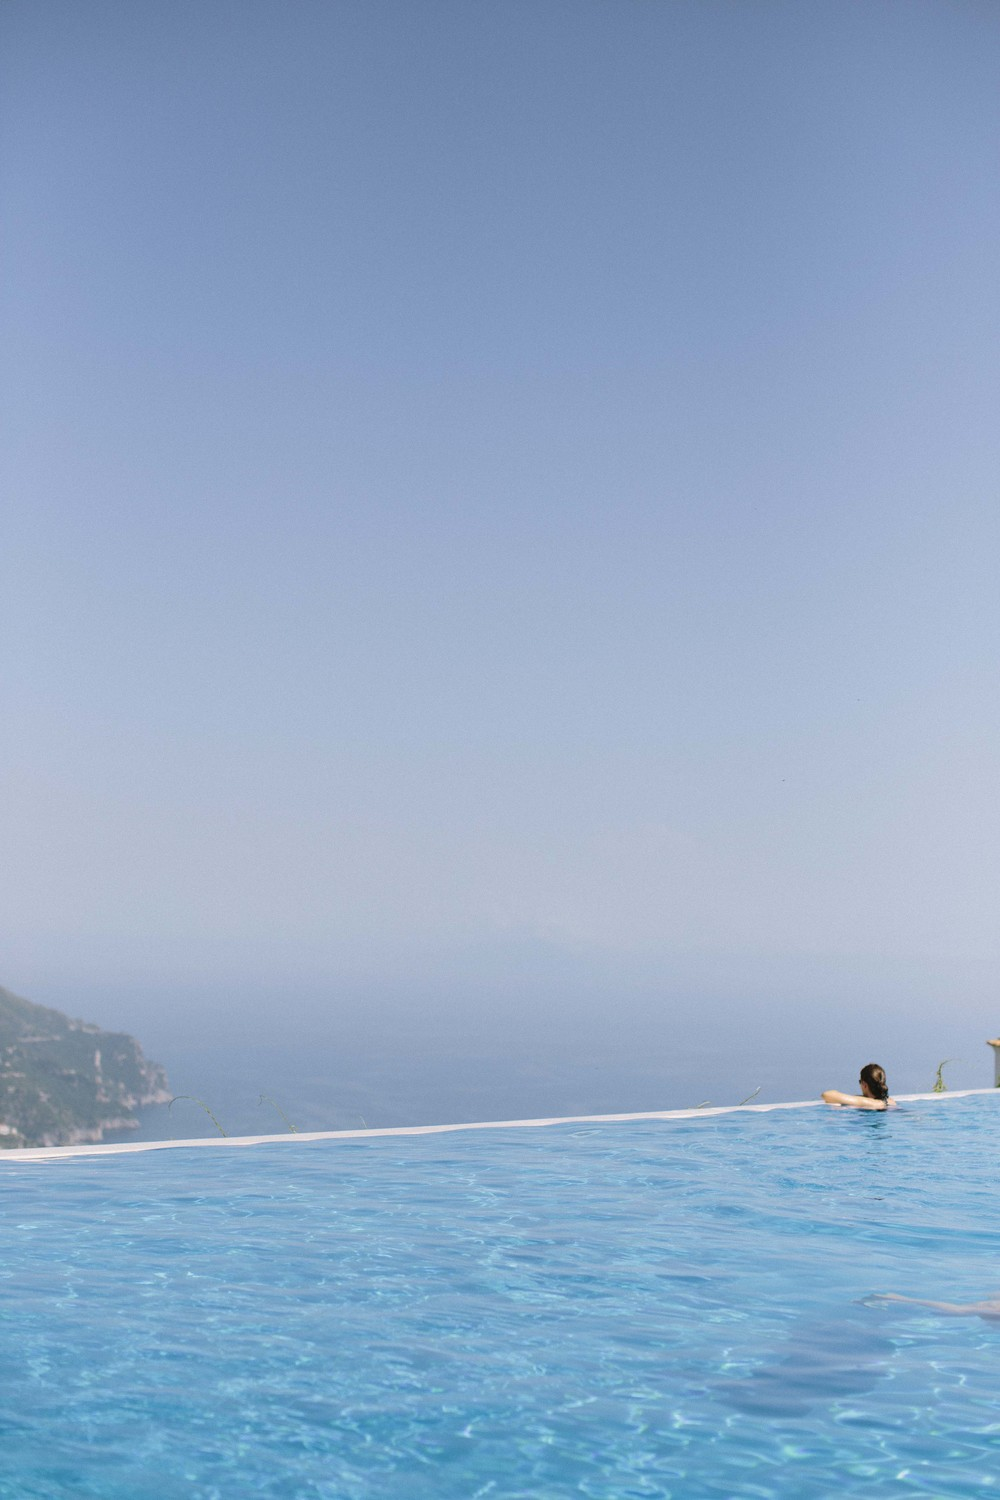 And Hotel Caruso boasts an infinity pool right into the ocean overlooking a cliff. Purely amazing!